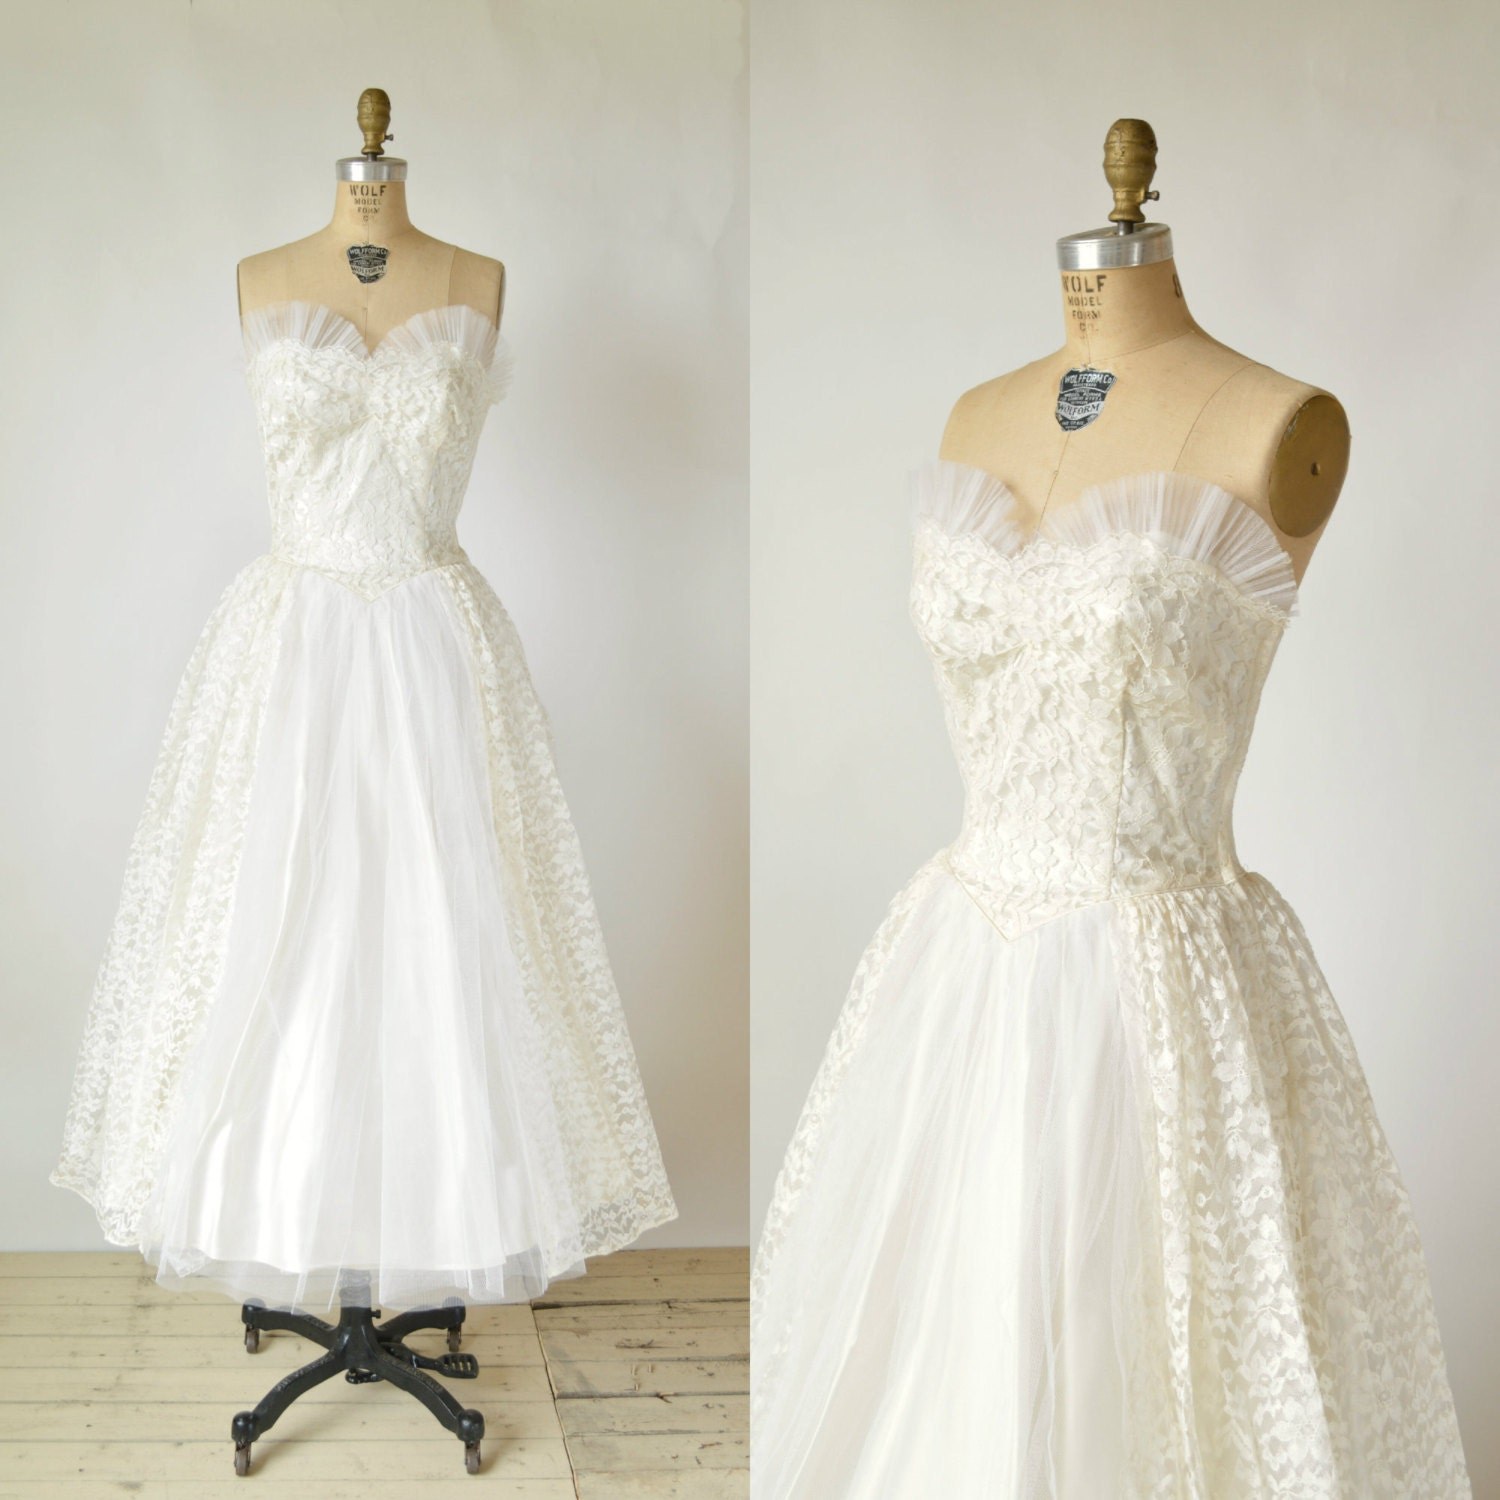 SALE /// 1950s Tea Length Wedding Dress Vintage Lace